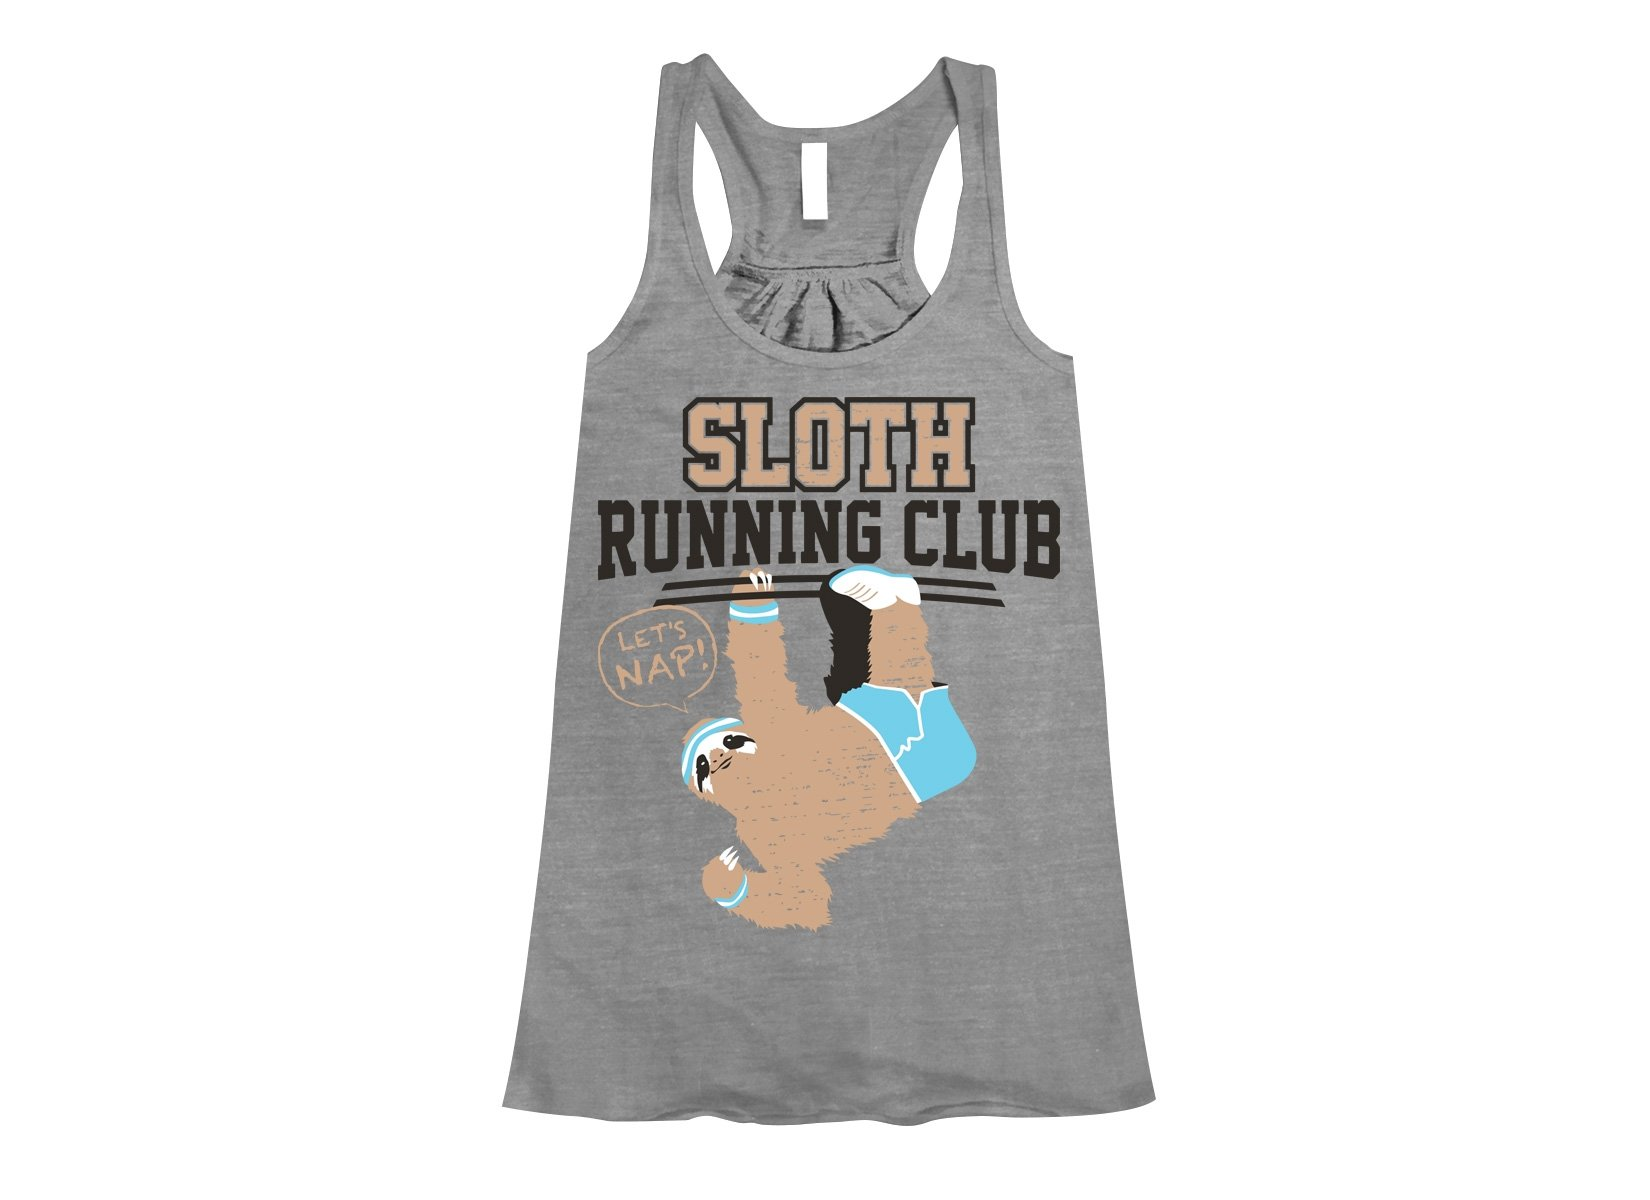 Sloth Running Club on Womens Tanks T-Shirt